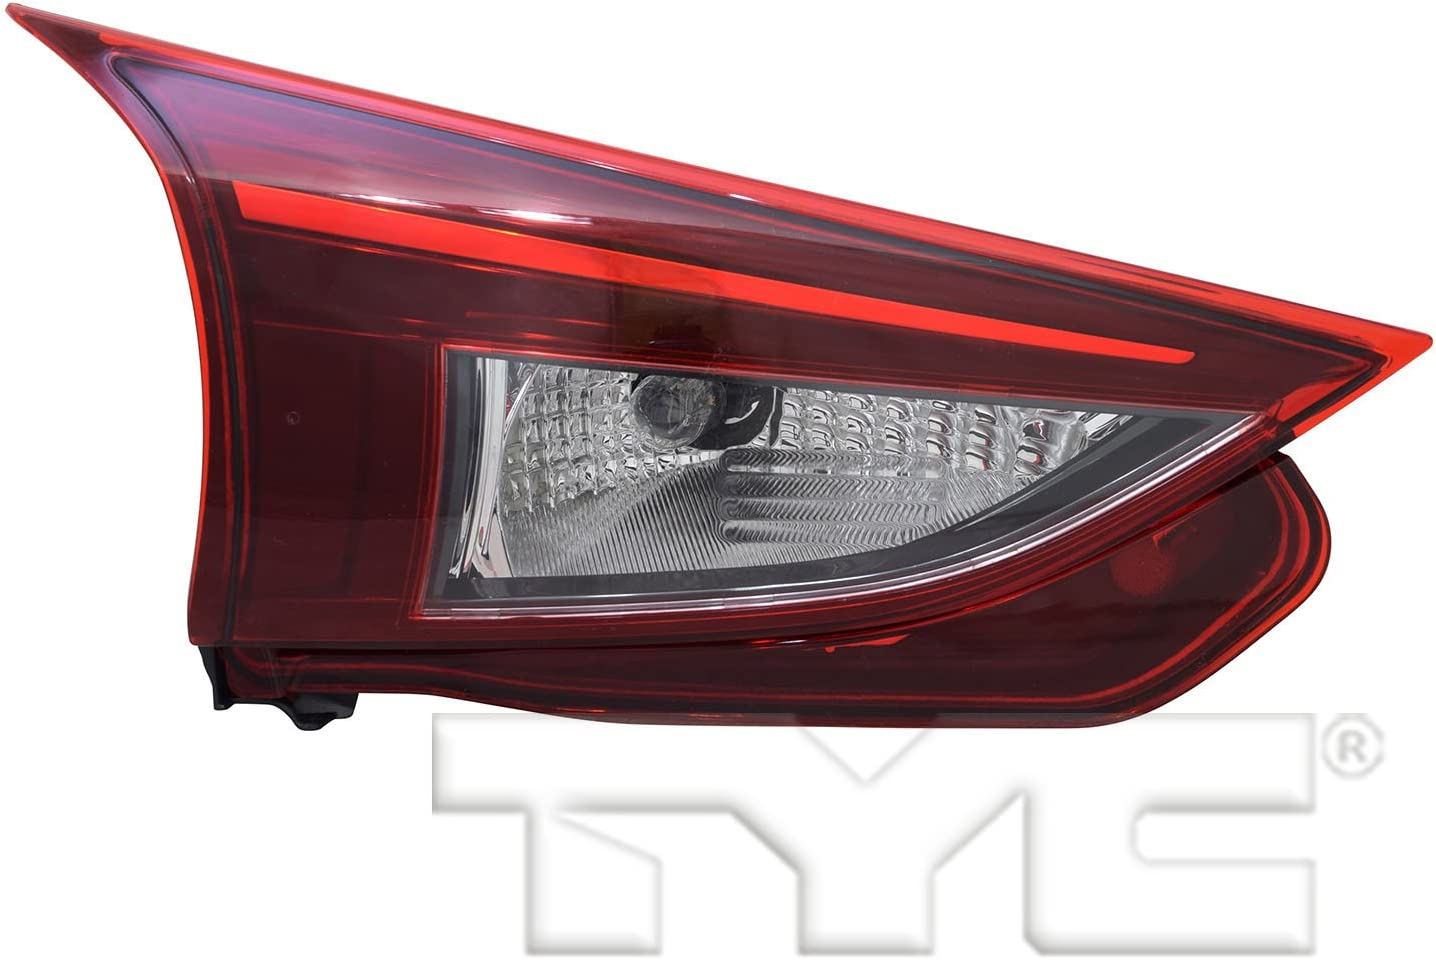 TYC 17-5648-00-1 Replacement Reflex Reflector for Mazda 3